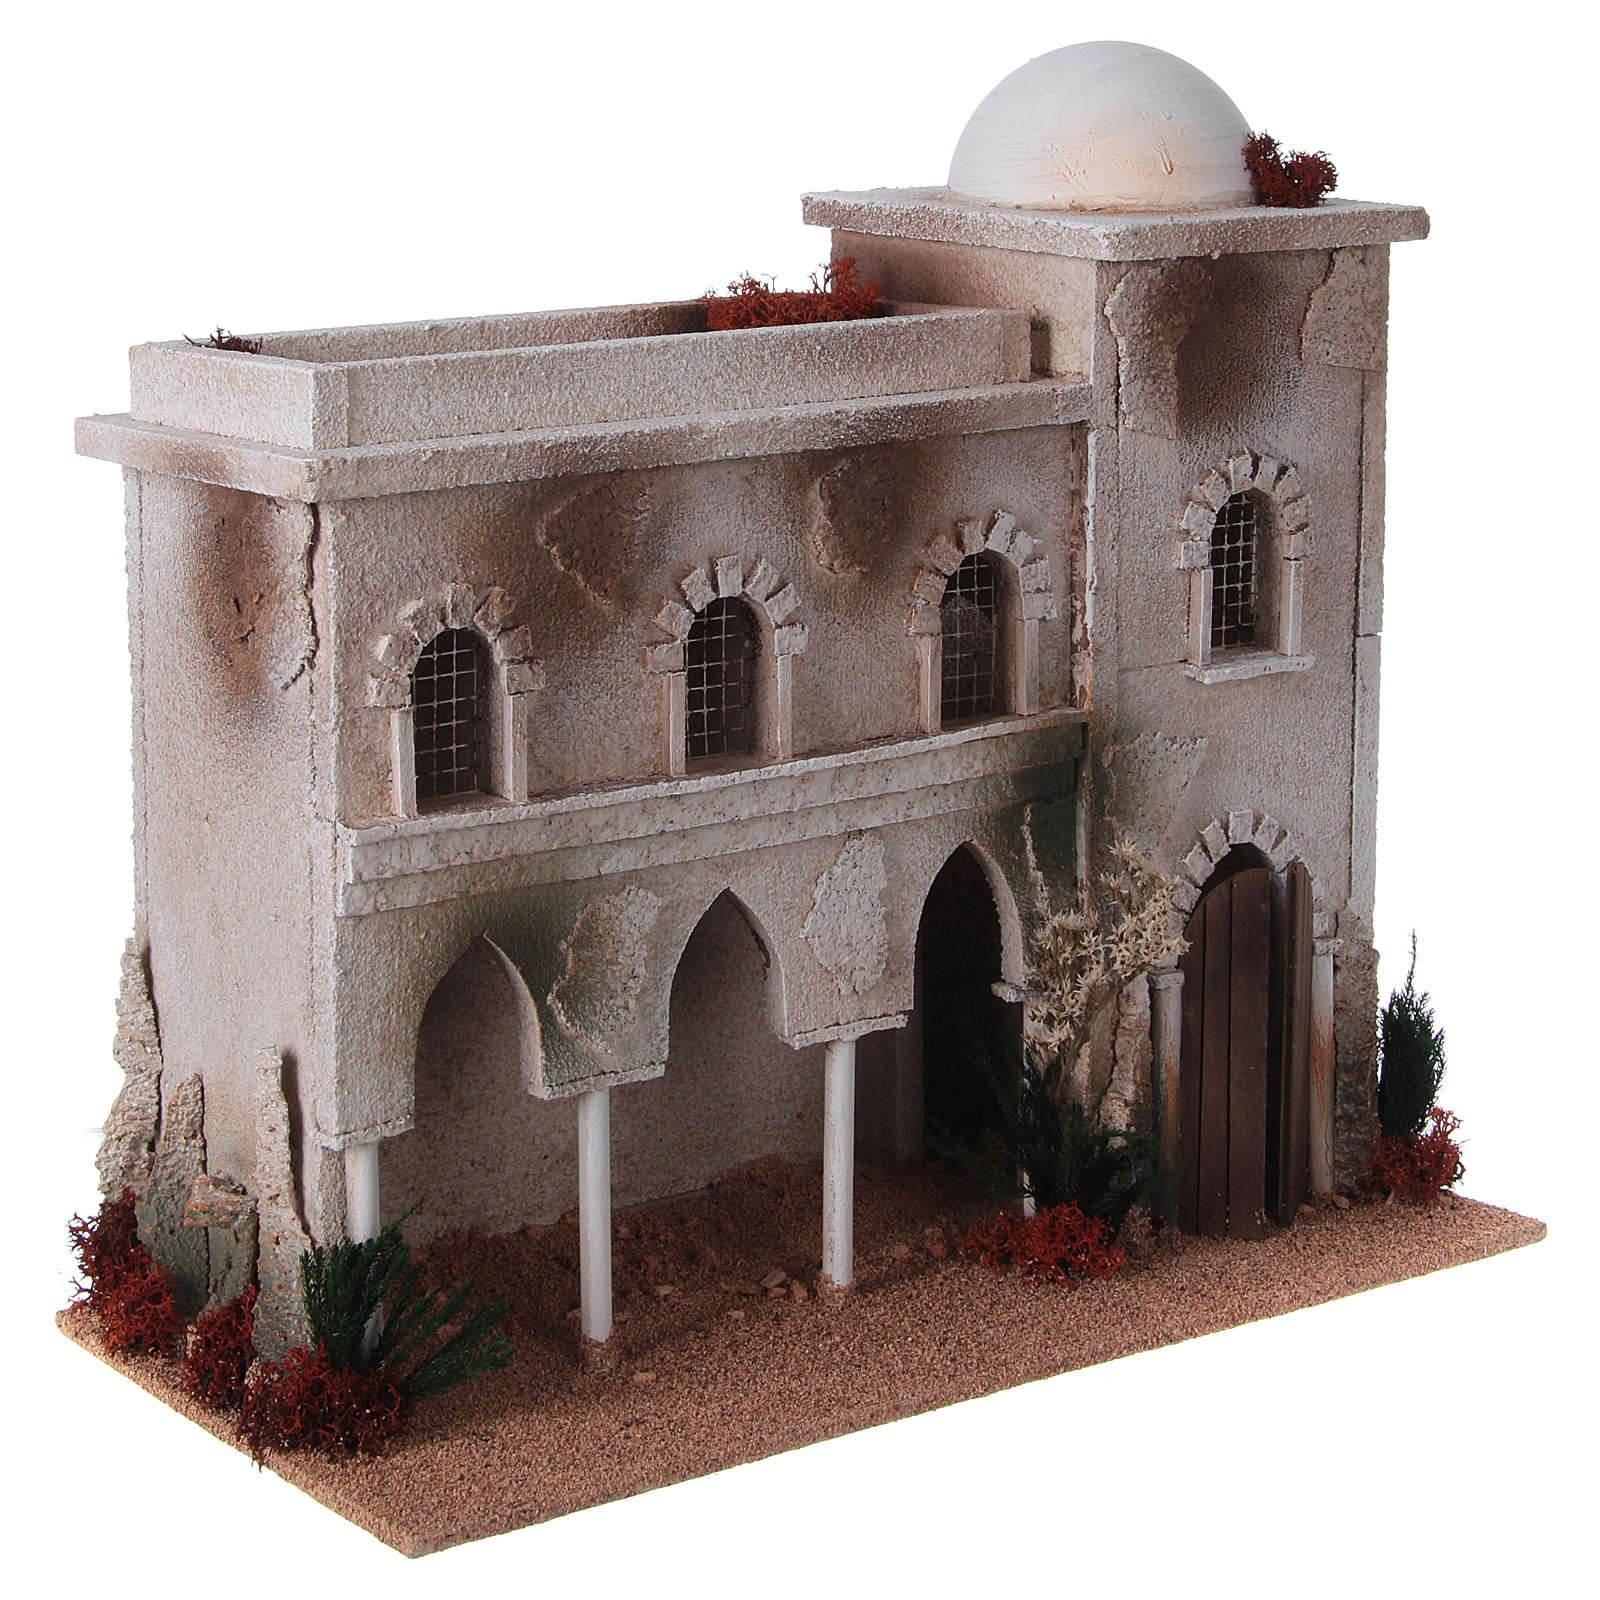 Nativity setting, Arabian house with dome and arches 4